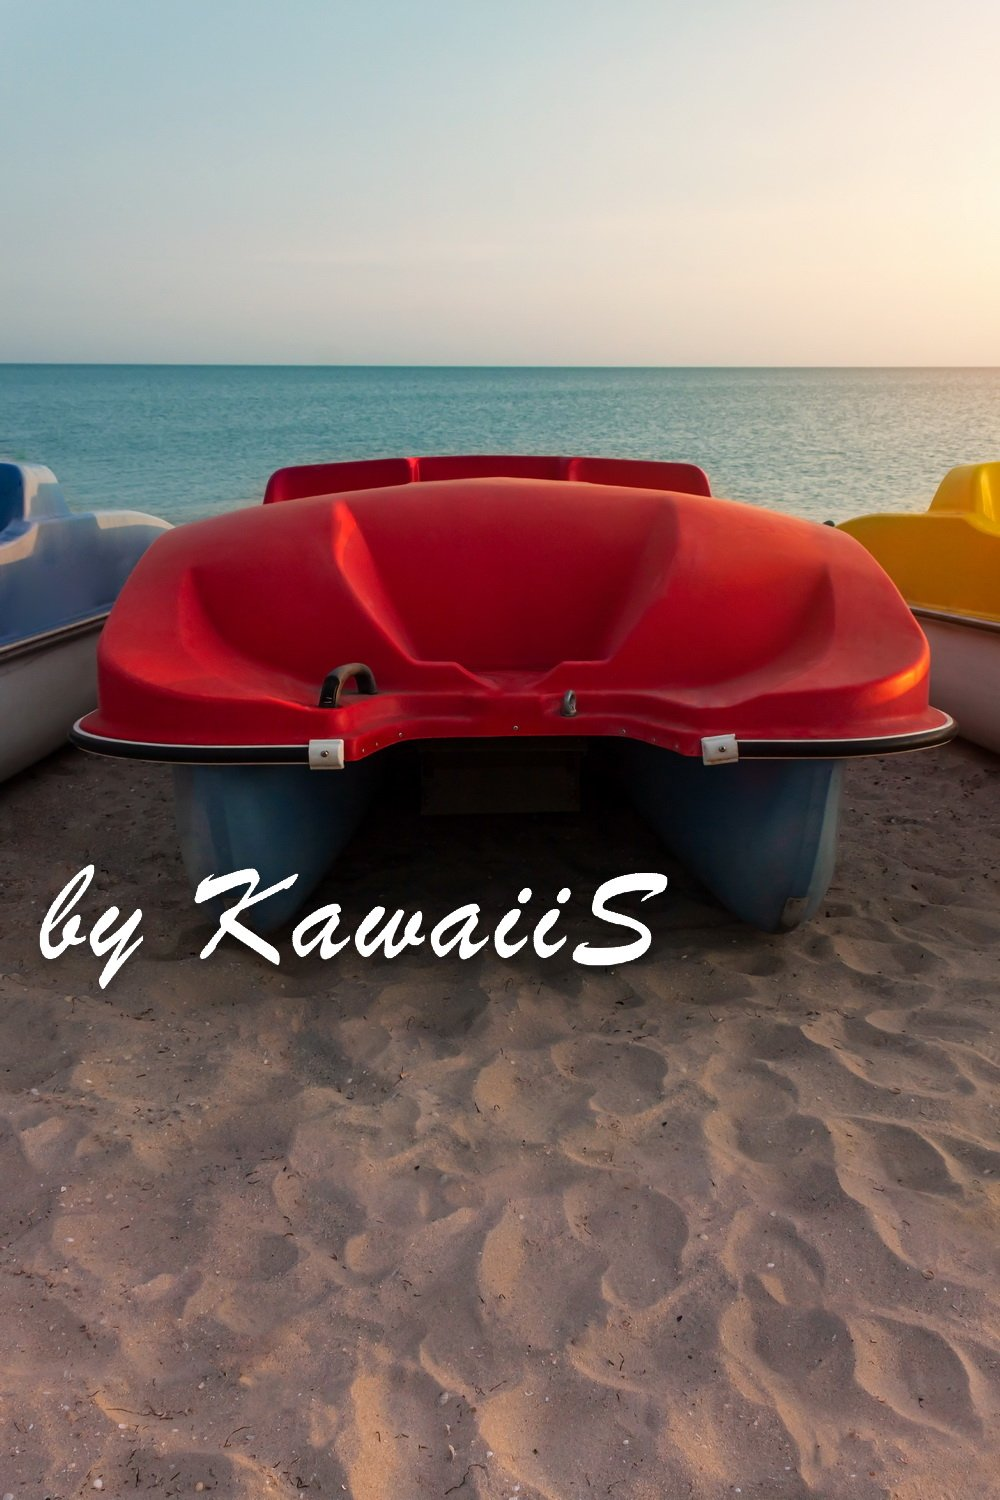 Colorful catamarans pedal boats on the sunset on a sea beach example image 6